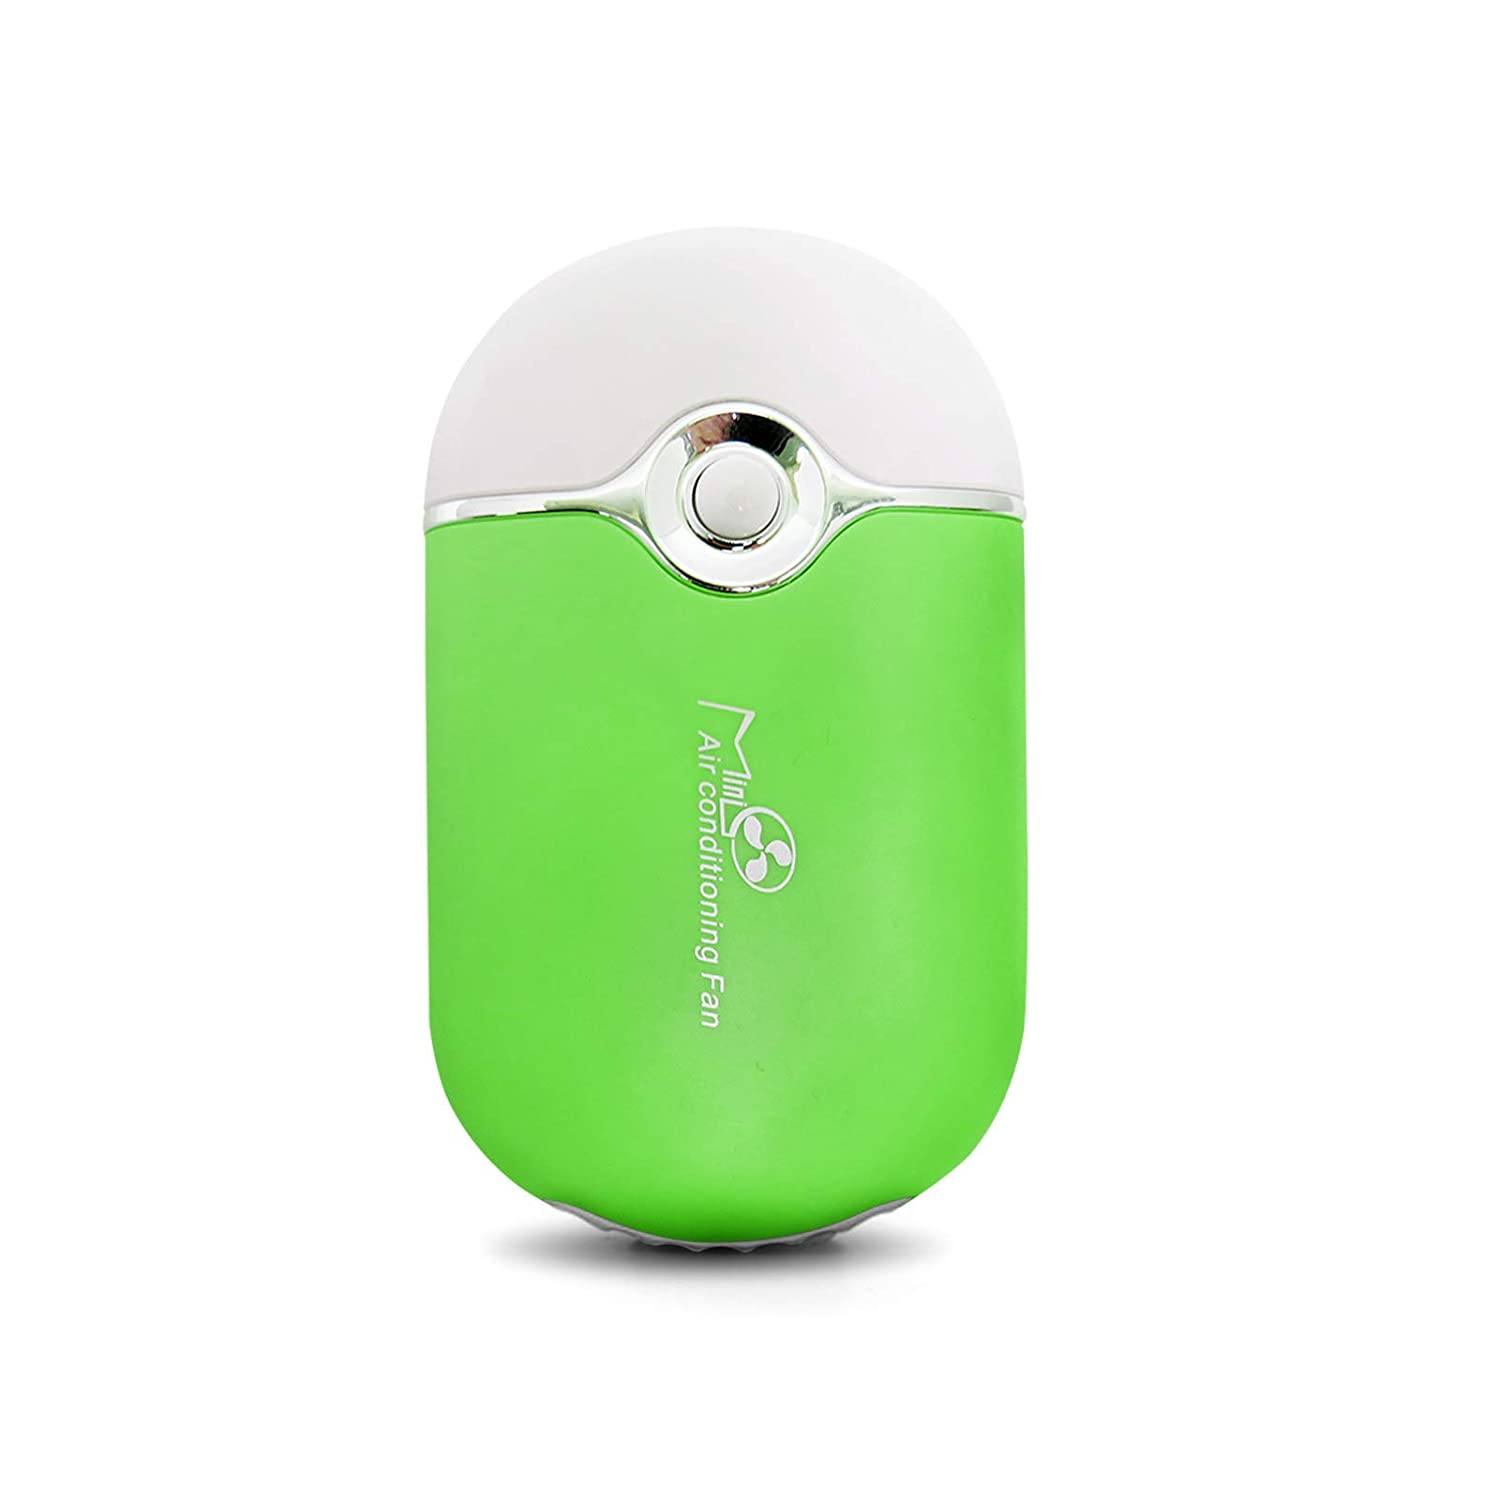 White GreenLife USB Rechargeable Portable Mini Fan Cooling Fan Bladeless Handheld Eyelash Dryer Mini Handheld Fan Air Conditioning Blower for Eyelash Extension